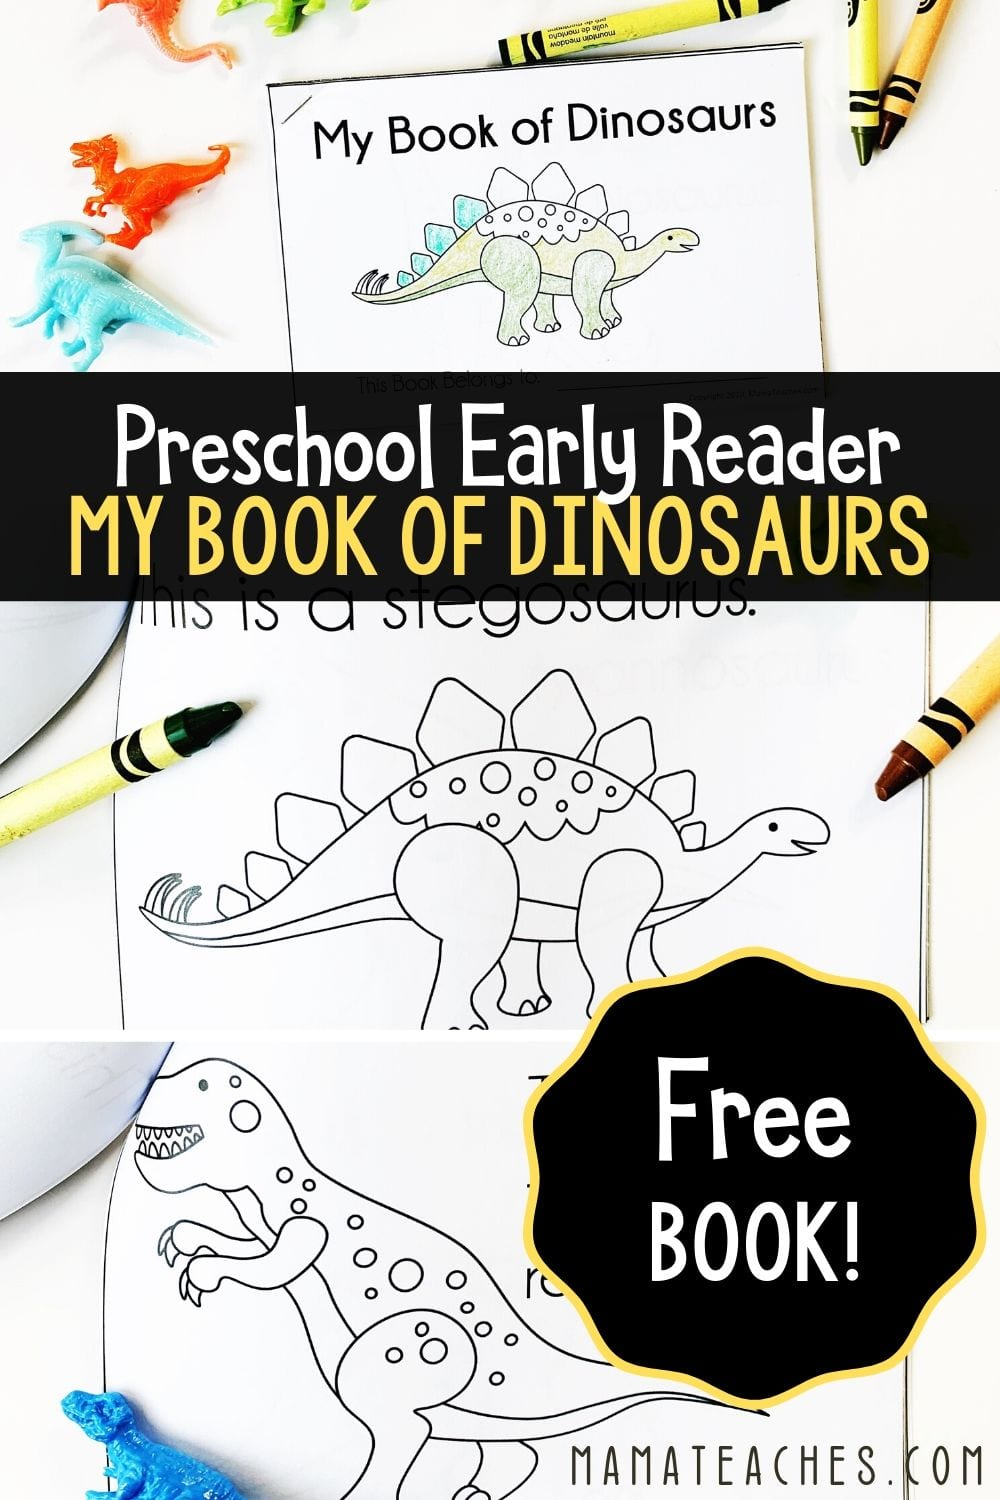 Free Preschool Early Reader - My Book of Dinosaurs - A Book of Dinosaurs for Preschoolers - MamaTeaches